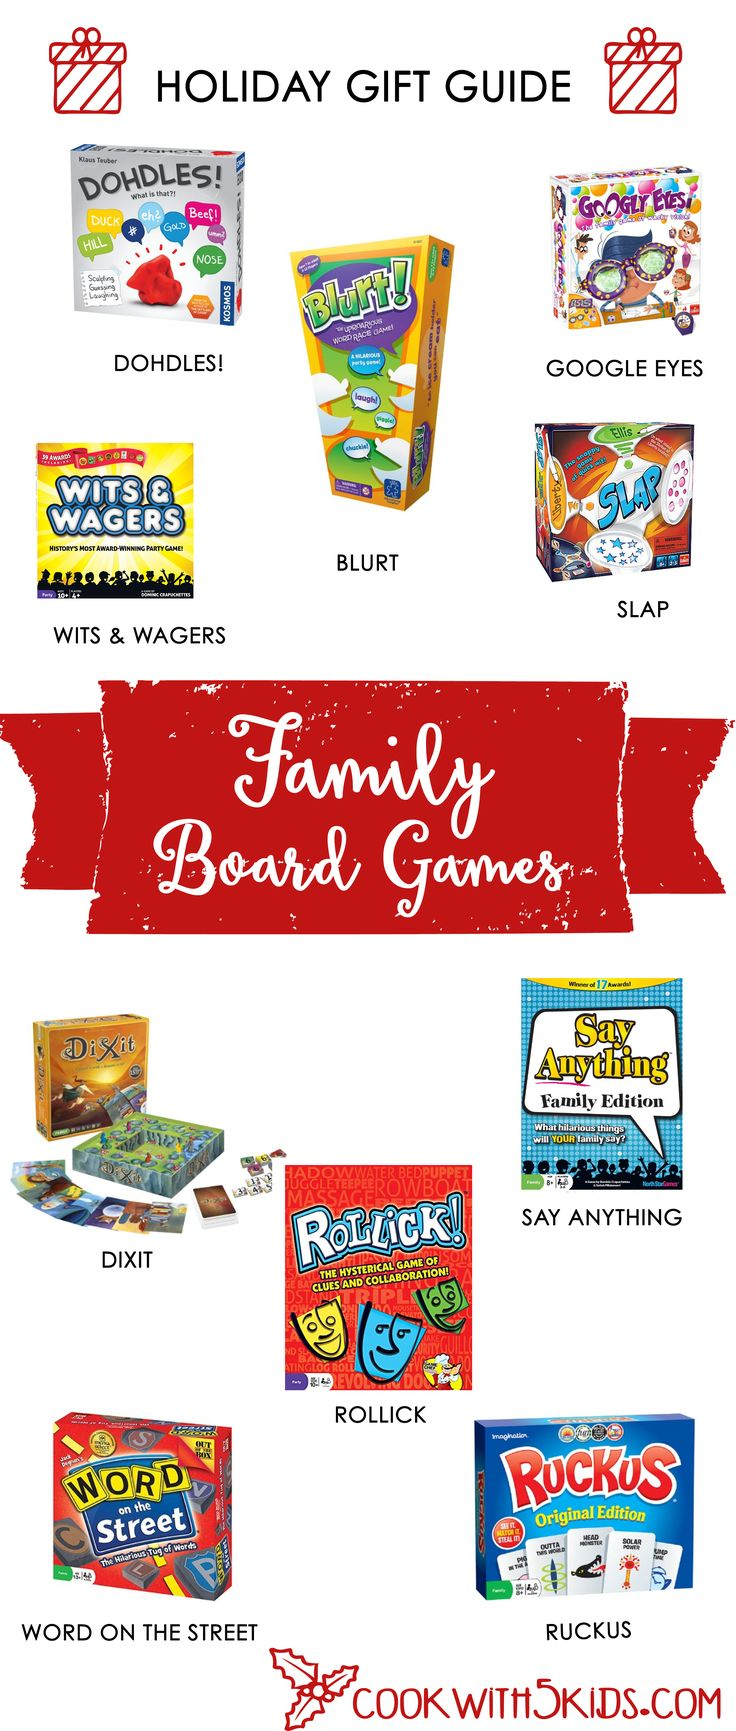 Our favorite way to bond as a family is to play board games.  Our board game collection totals more than 200, many of them old childhood favorites. Board games are such a great way to bond with your tweens and teens.  We always start laughing while playing a board game (occasionally crying from so …